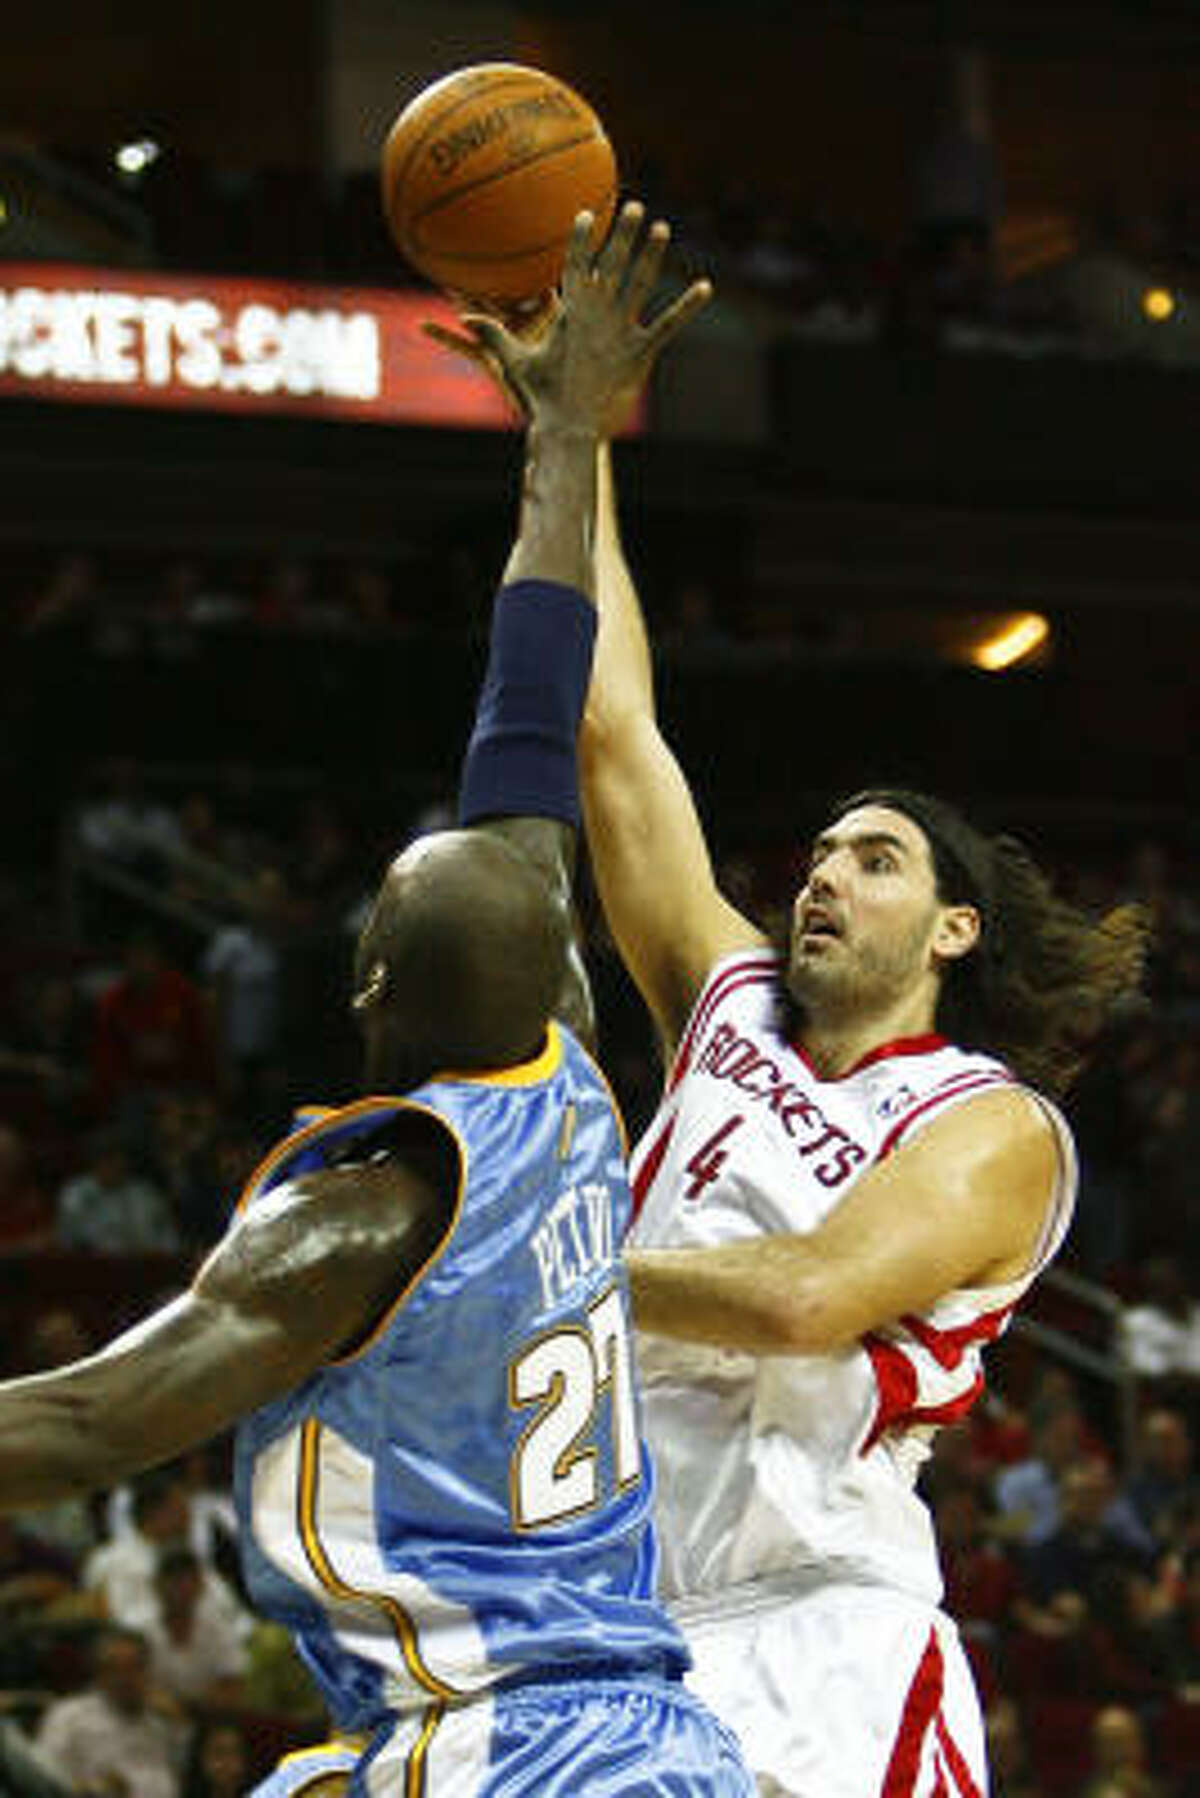 Rockets forward Luis Scola puts up a shot over Nuggets center Johan Petro.